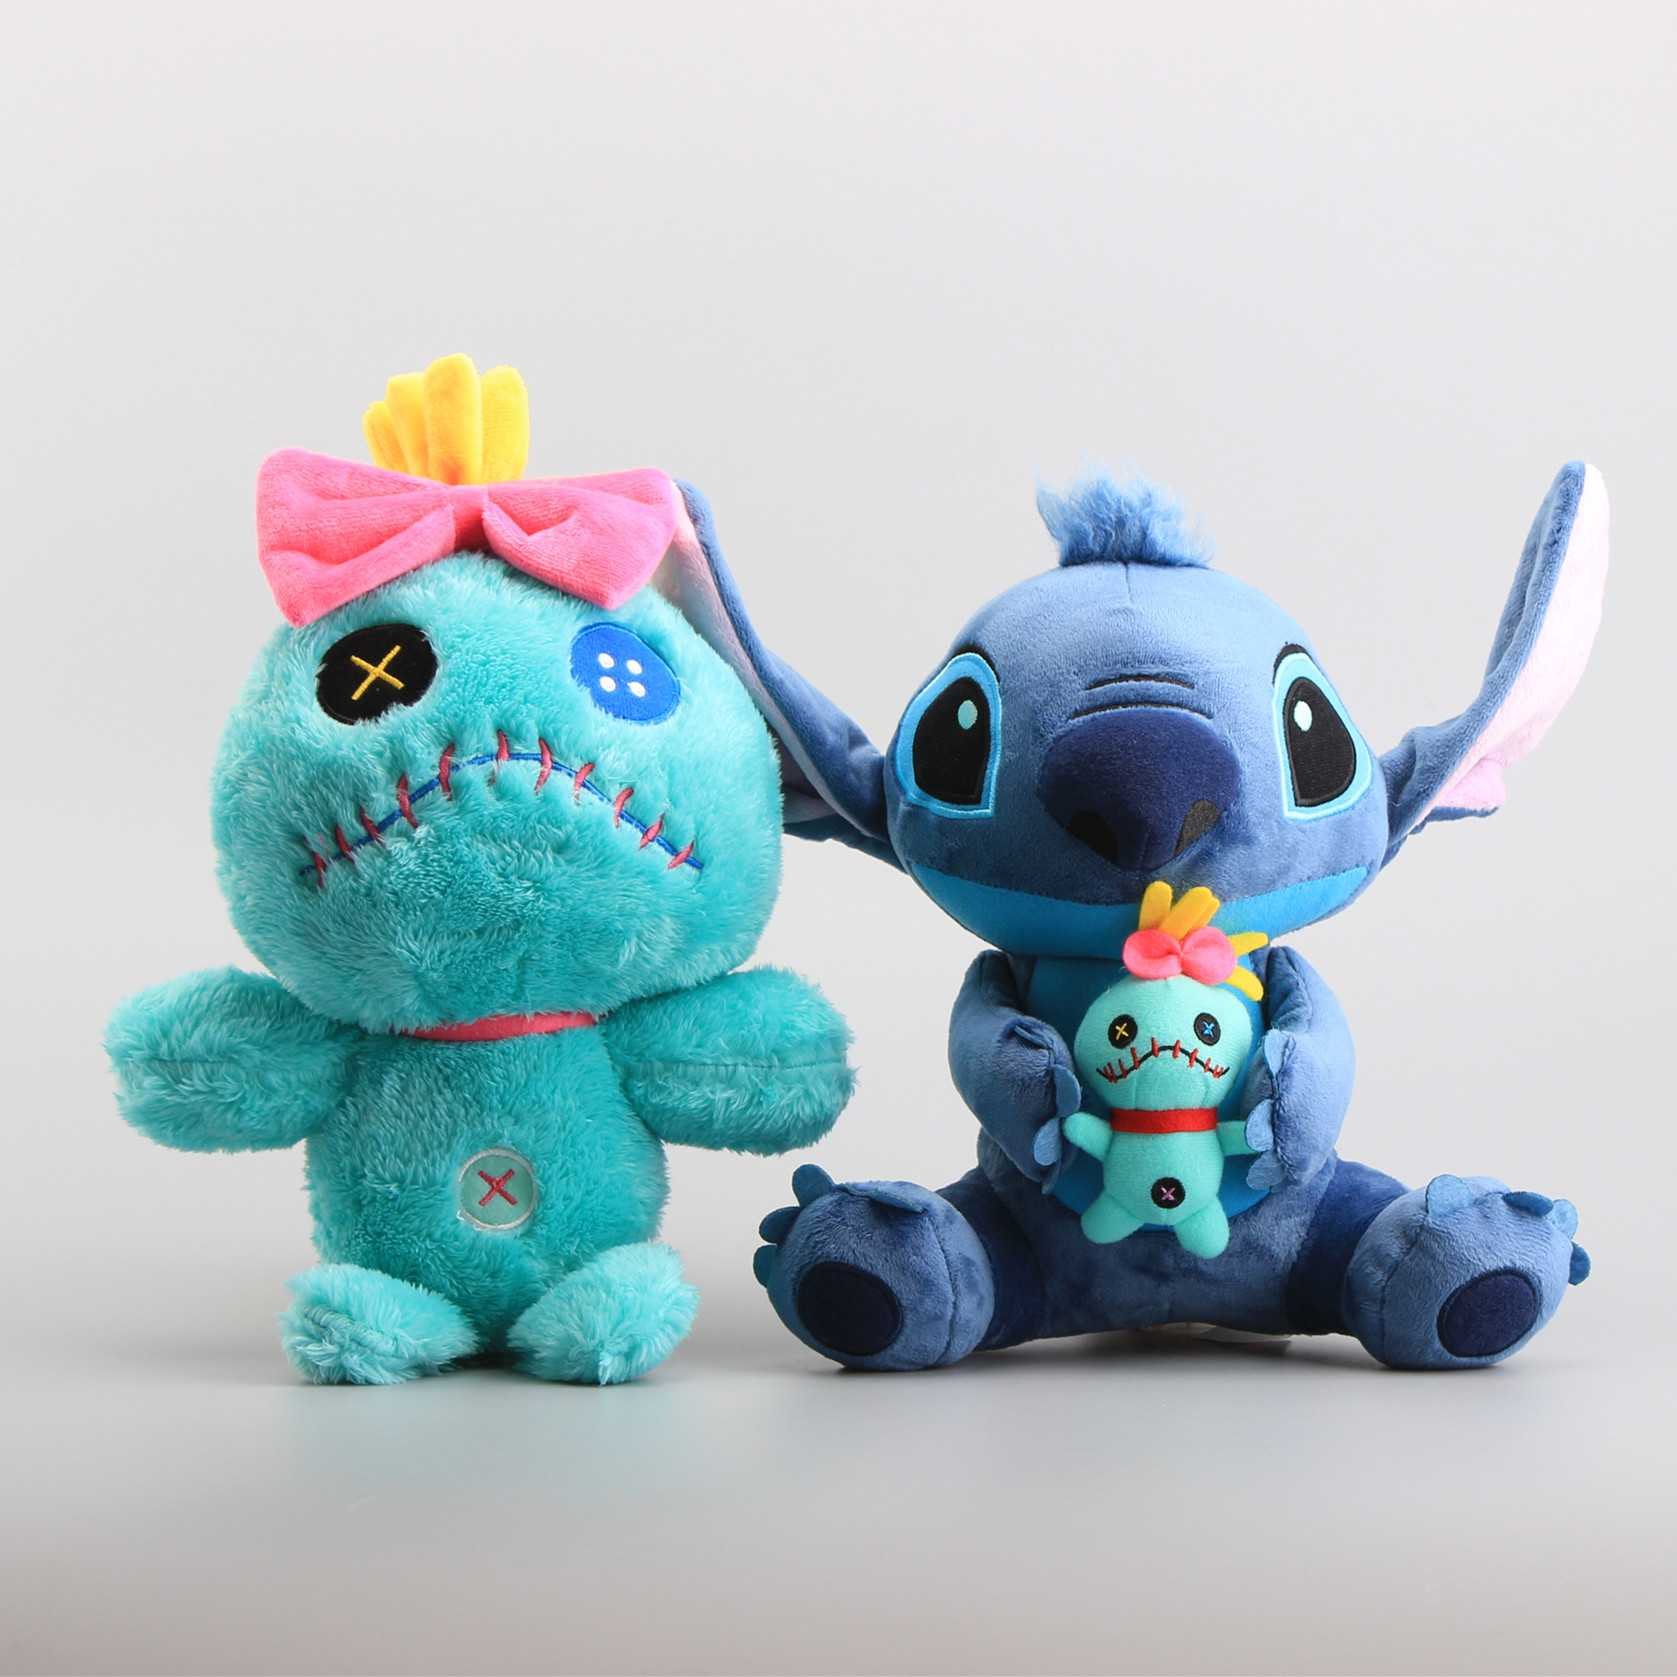 Lilo & Stitch Scrump Plush Doll Toys Cute Stitch Soft Stuffed Dolls Chilren Gift 25-32 cm kawaii stitch plush toys lilo and stitch stich plush toy soft stuffed animal doll kids toys christmas gift 30cm